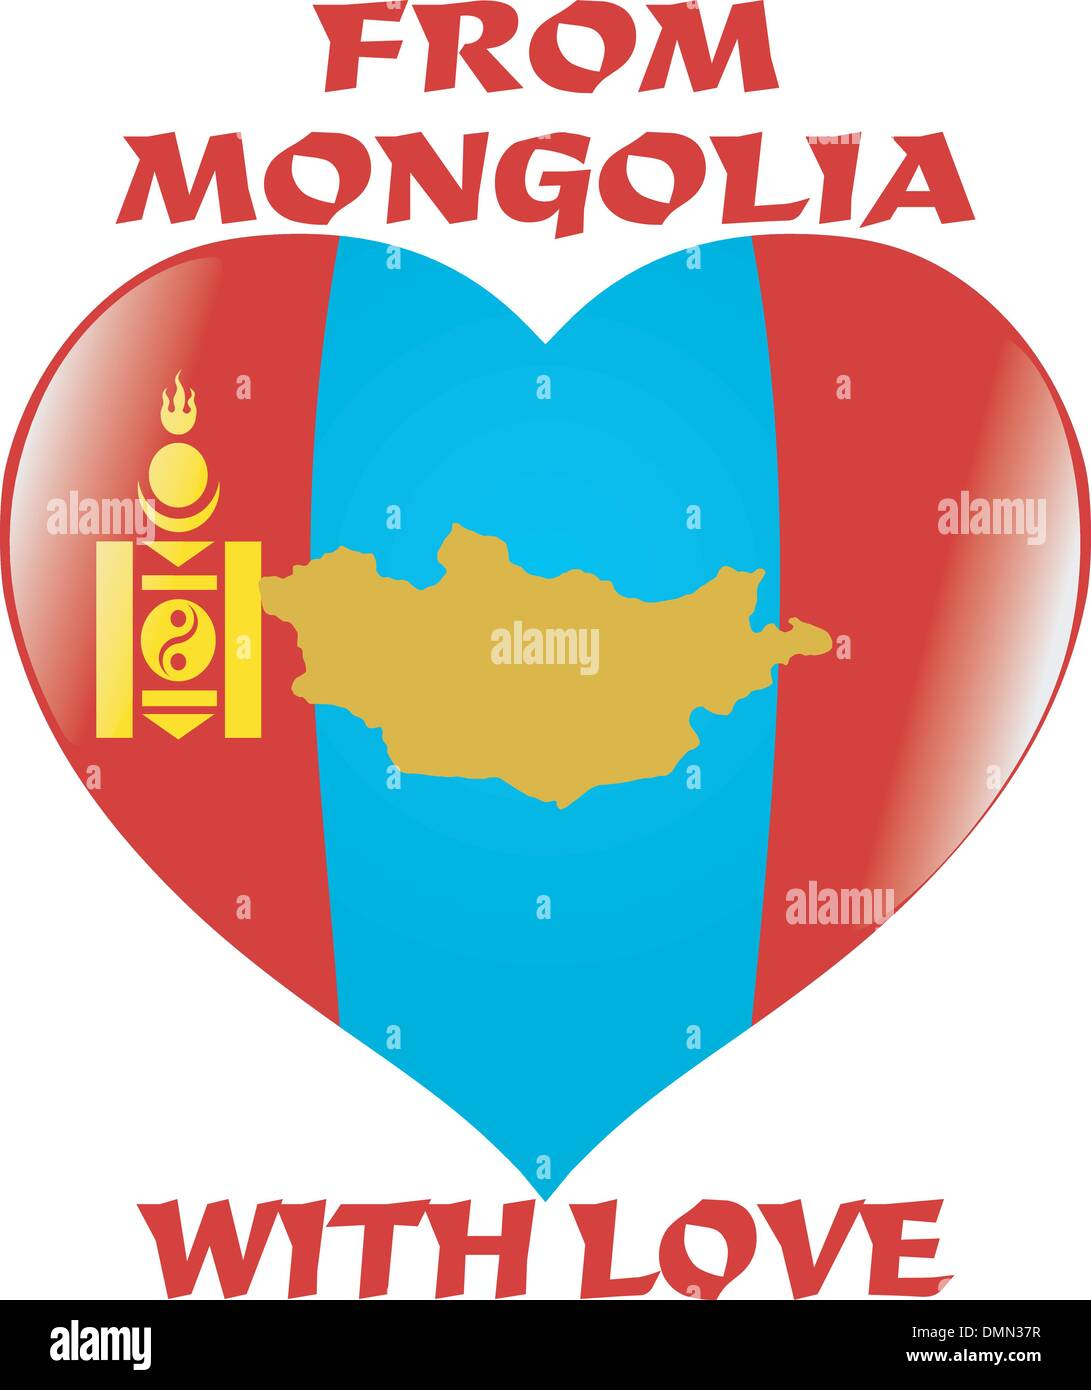 from Mongolia with love - Stock Vector